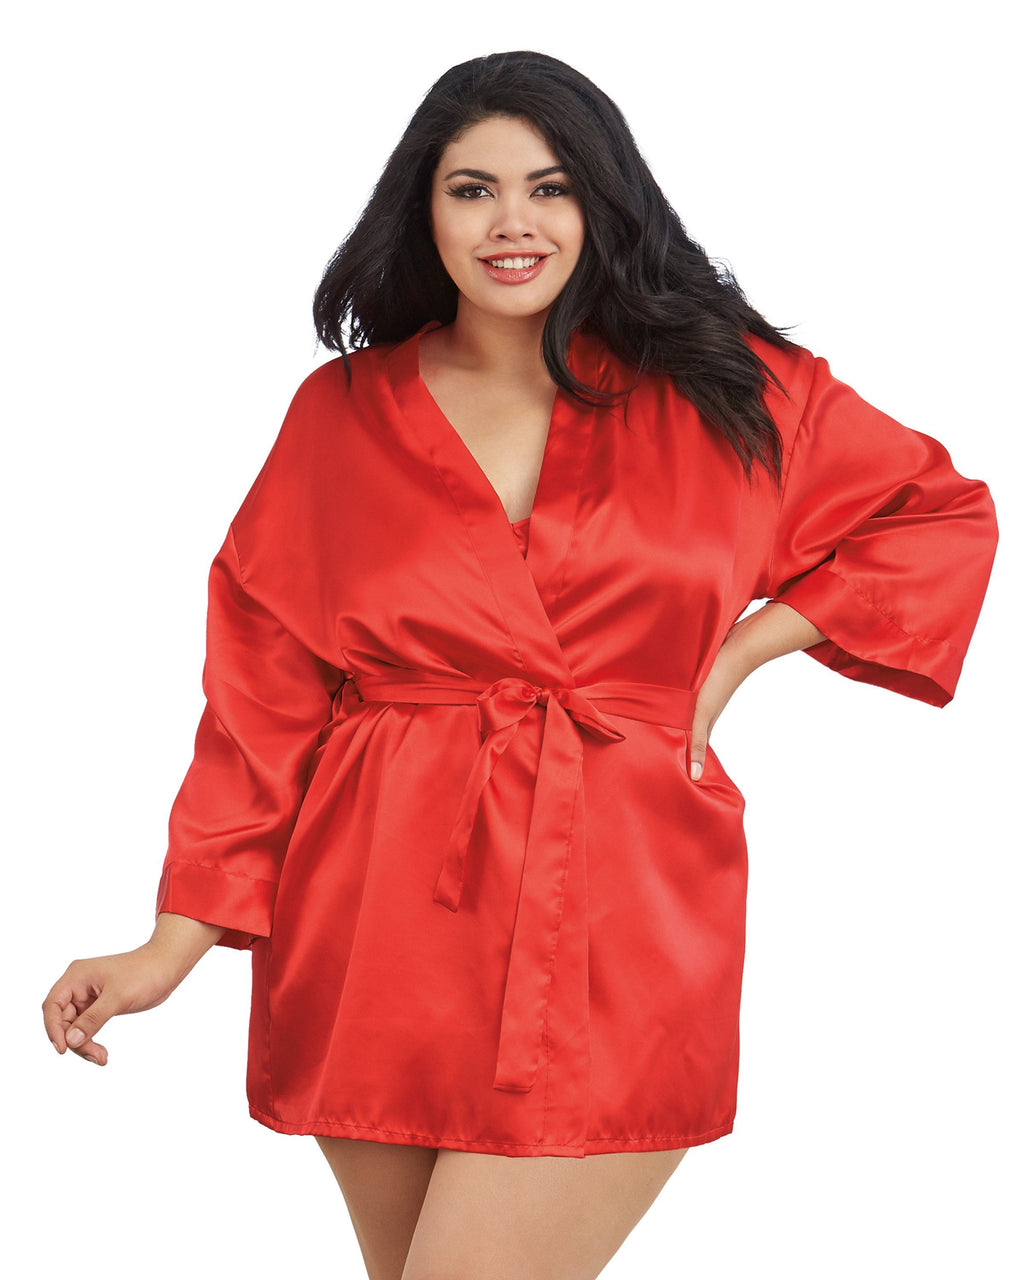 Plus Size Satin Robe & Chemise Set Robe Dreamgirl International 1X/2X Red